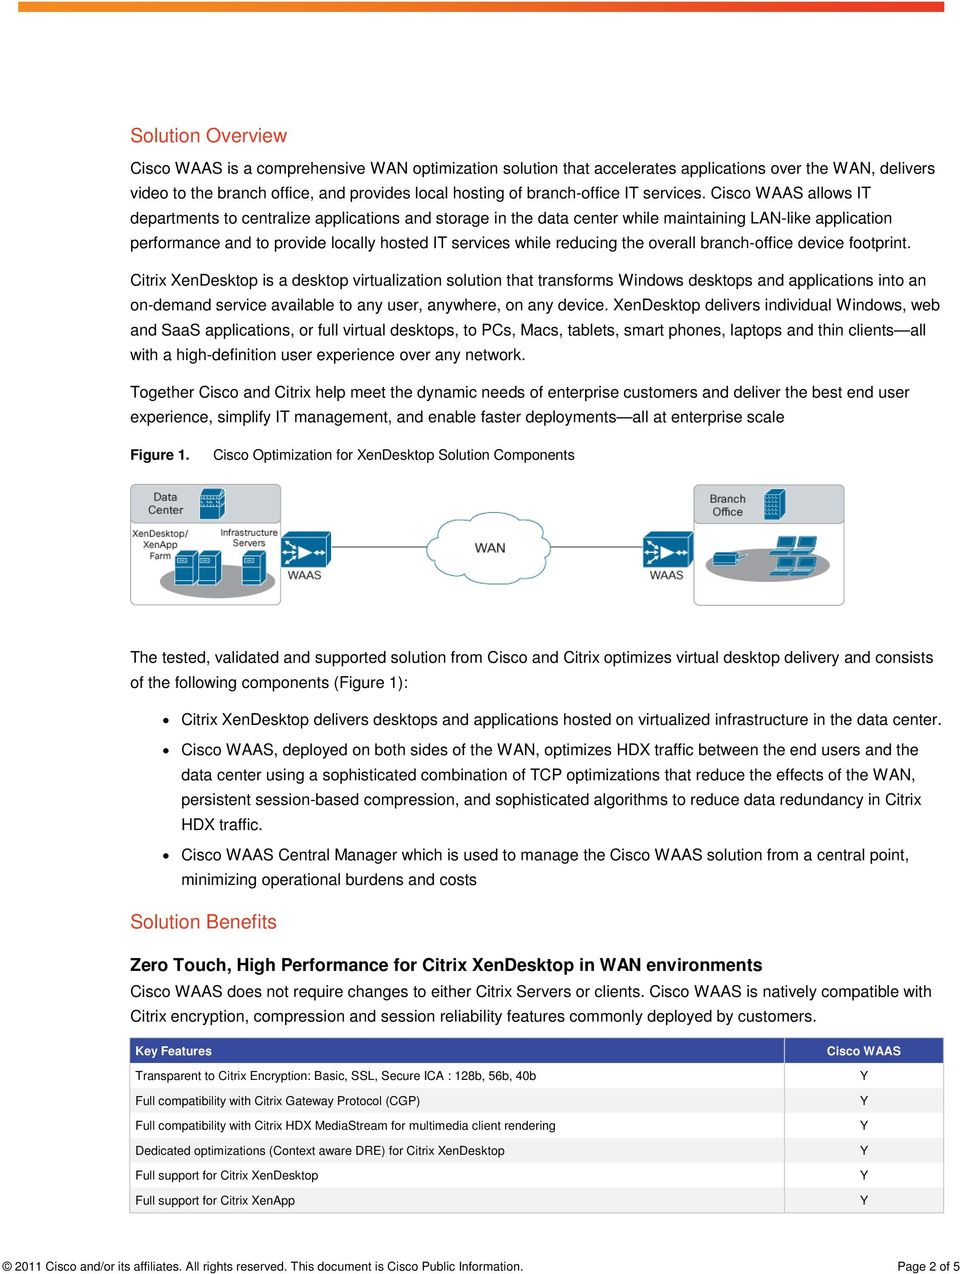 Cisco WAAS allows IT departments to centralize applications and storage in the data center while maintaining LAN-like application performance and to provide locally hosted IT services while reducing